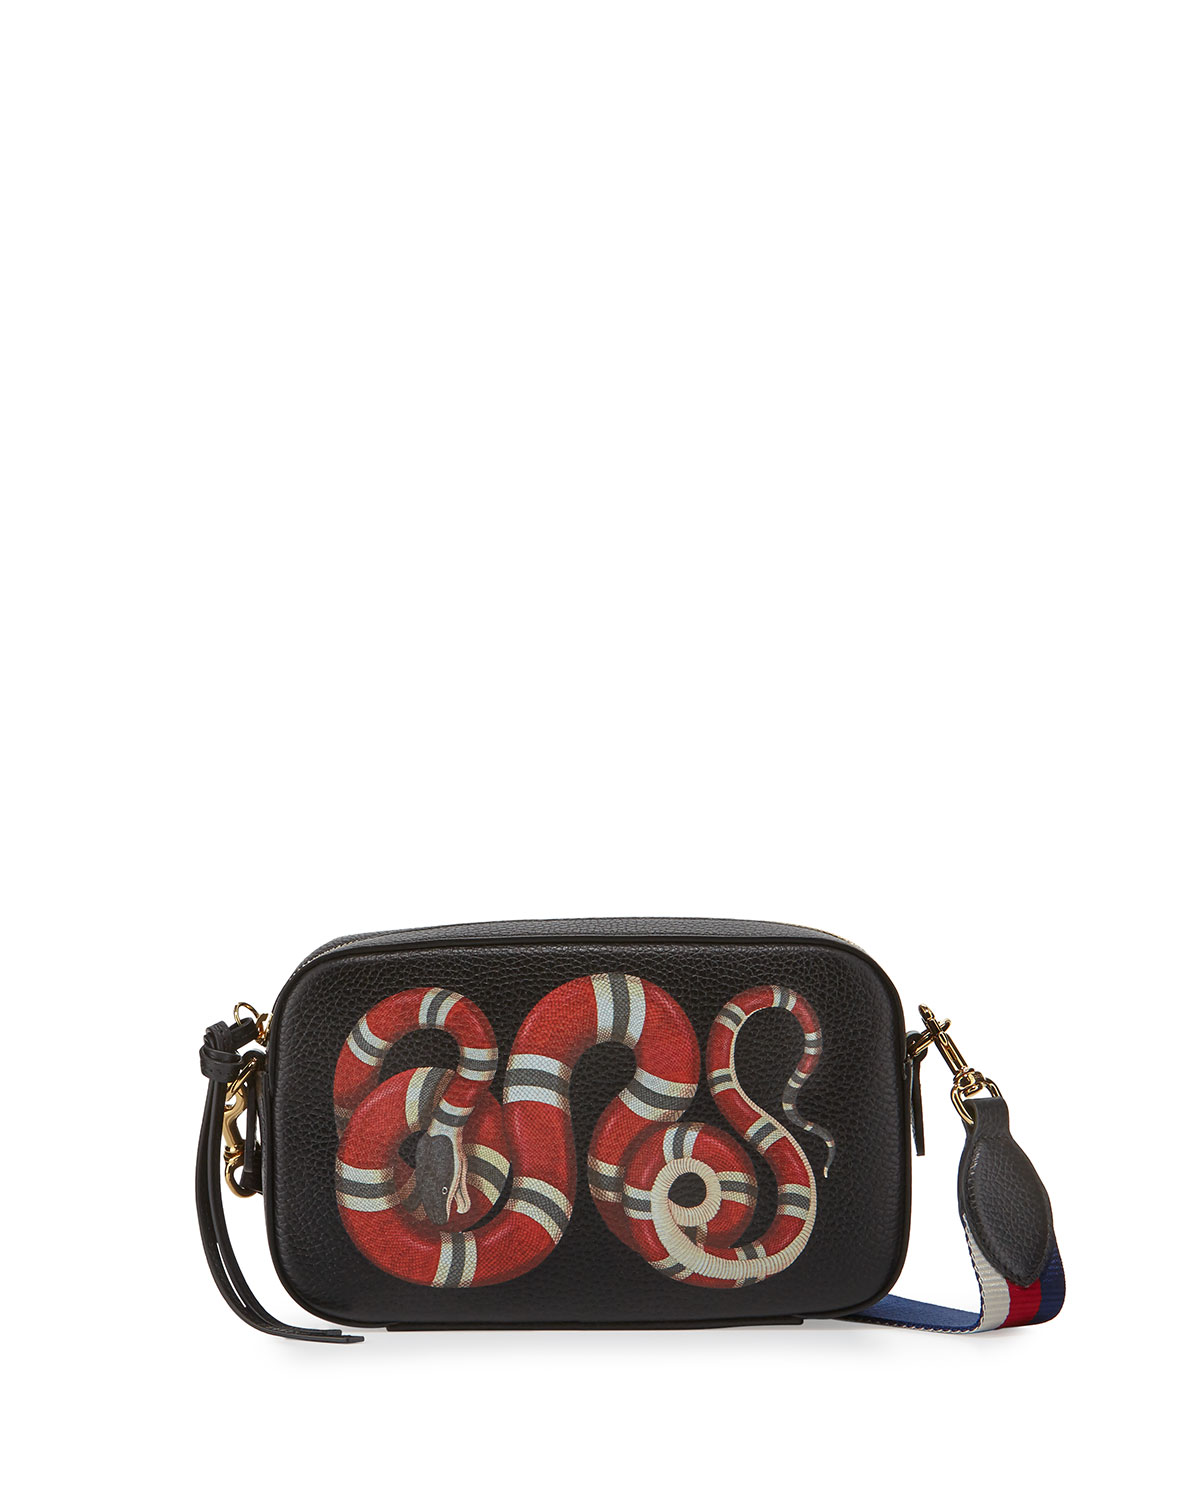 5a28f849d9bd Gucci Merveilles Small Snake-Print Camera Bag, Black/Red/White ...